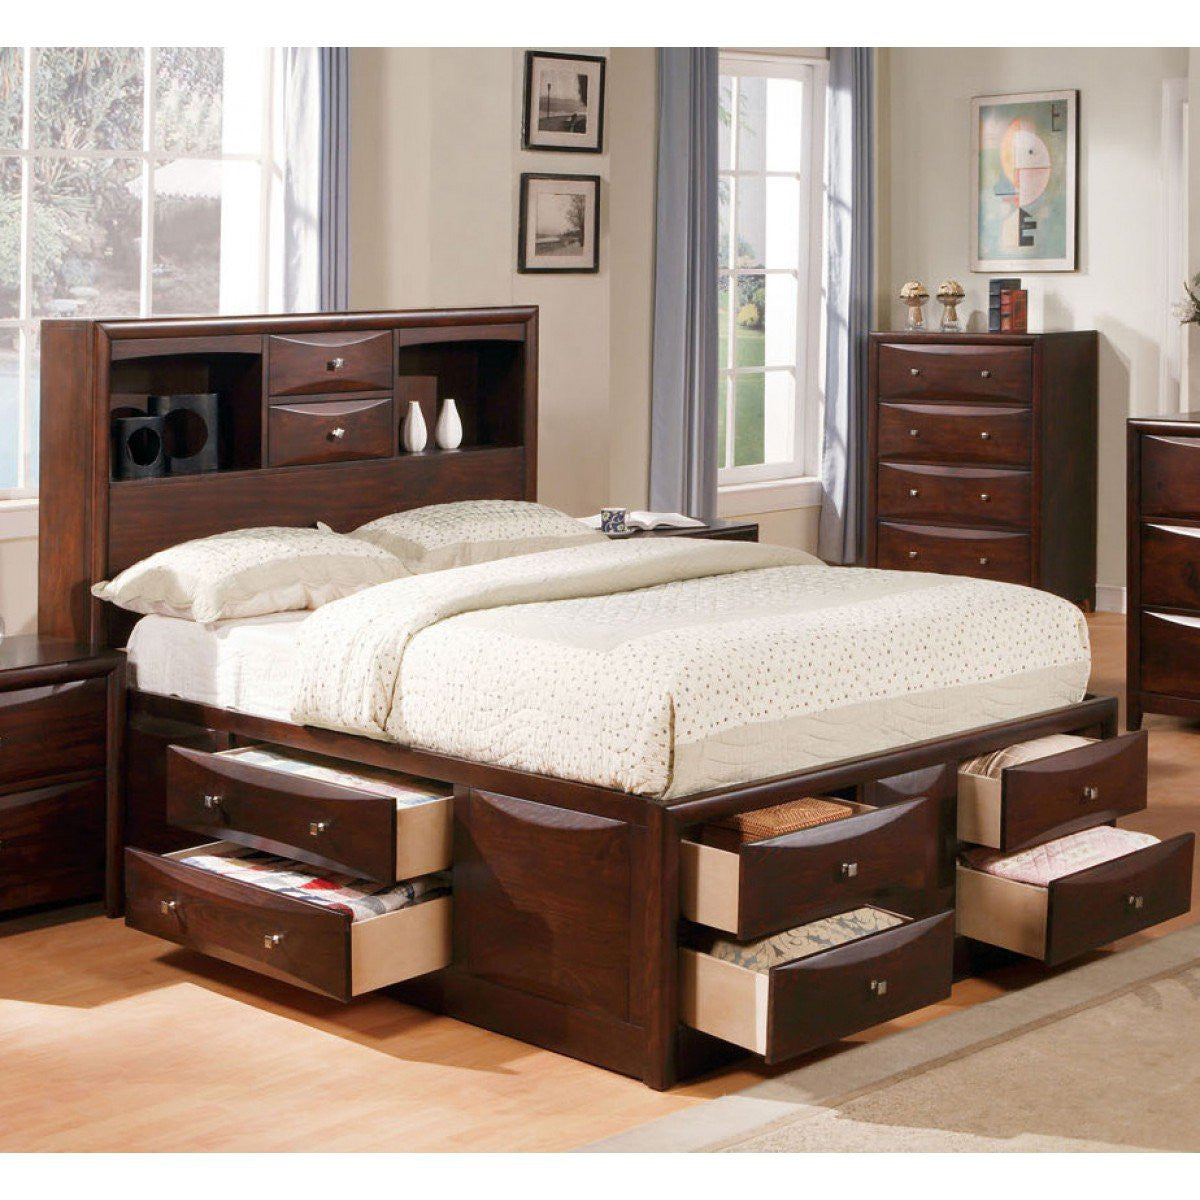 Picture of: Acme Manhattan California King Bed W Storage Espresso 04064ck Hipbeds Com